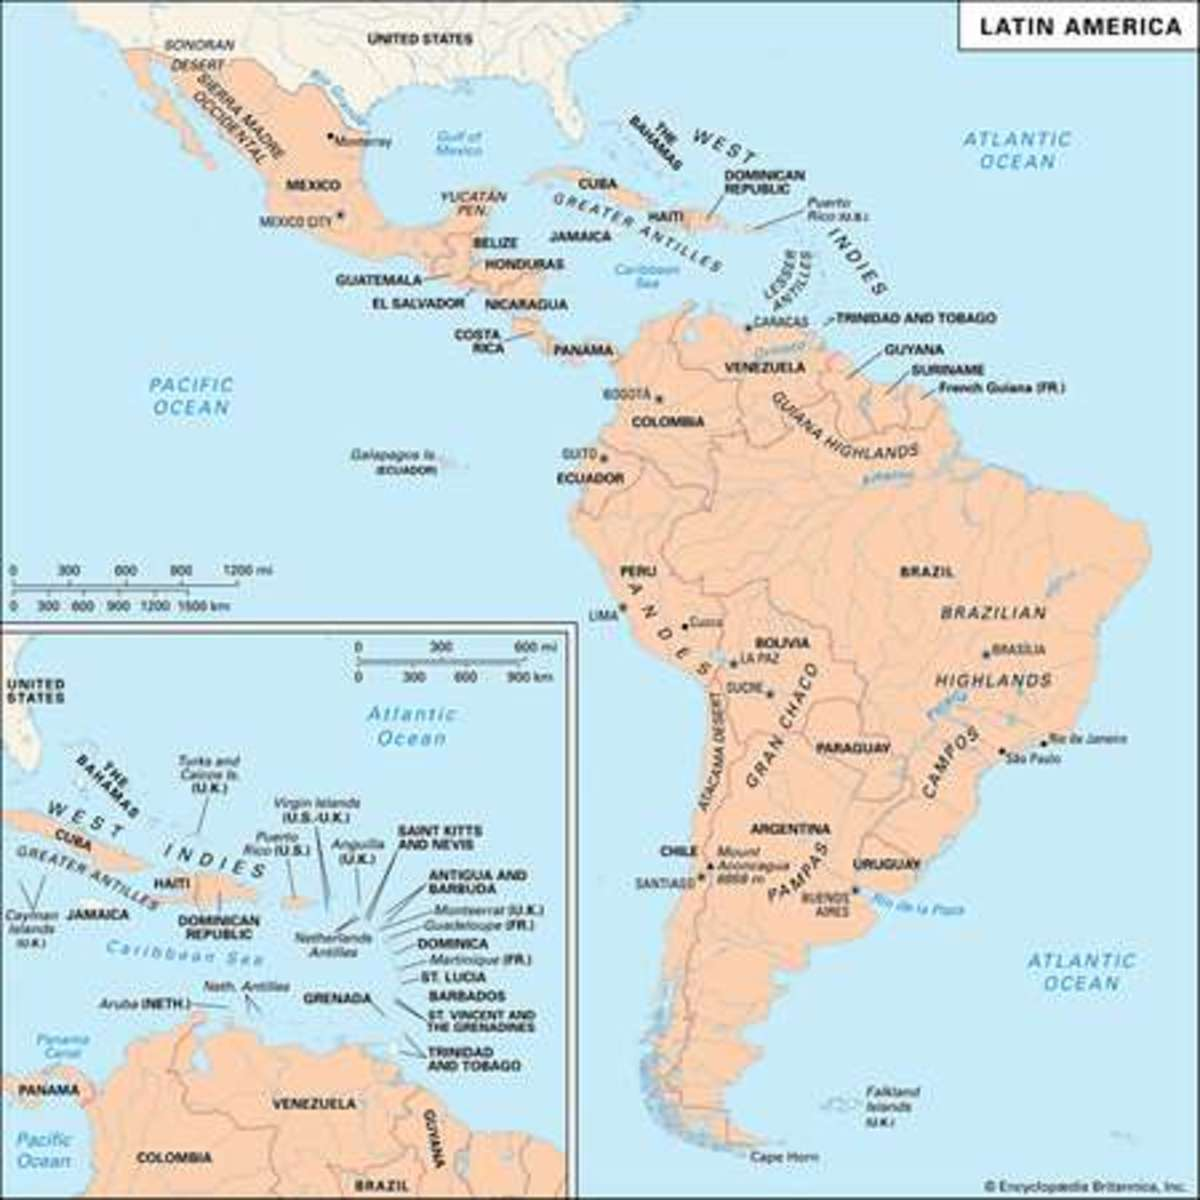 Causes for Subaltern Rebellions in Latin American History: A Historiographical Analysis